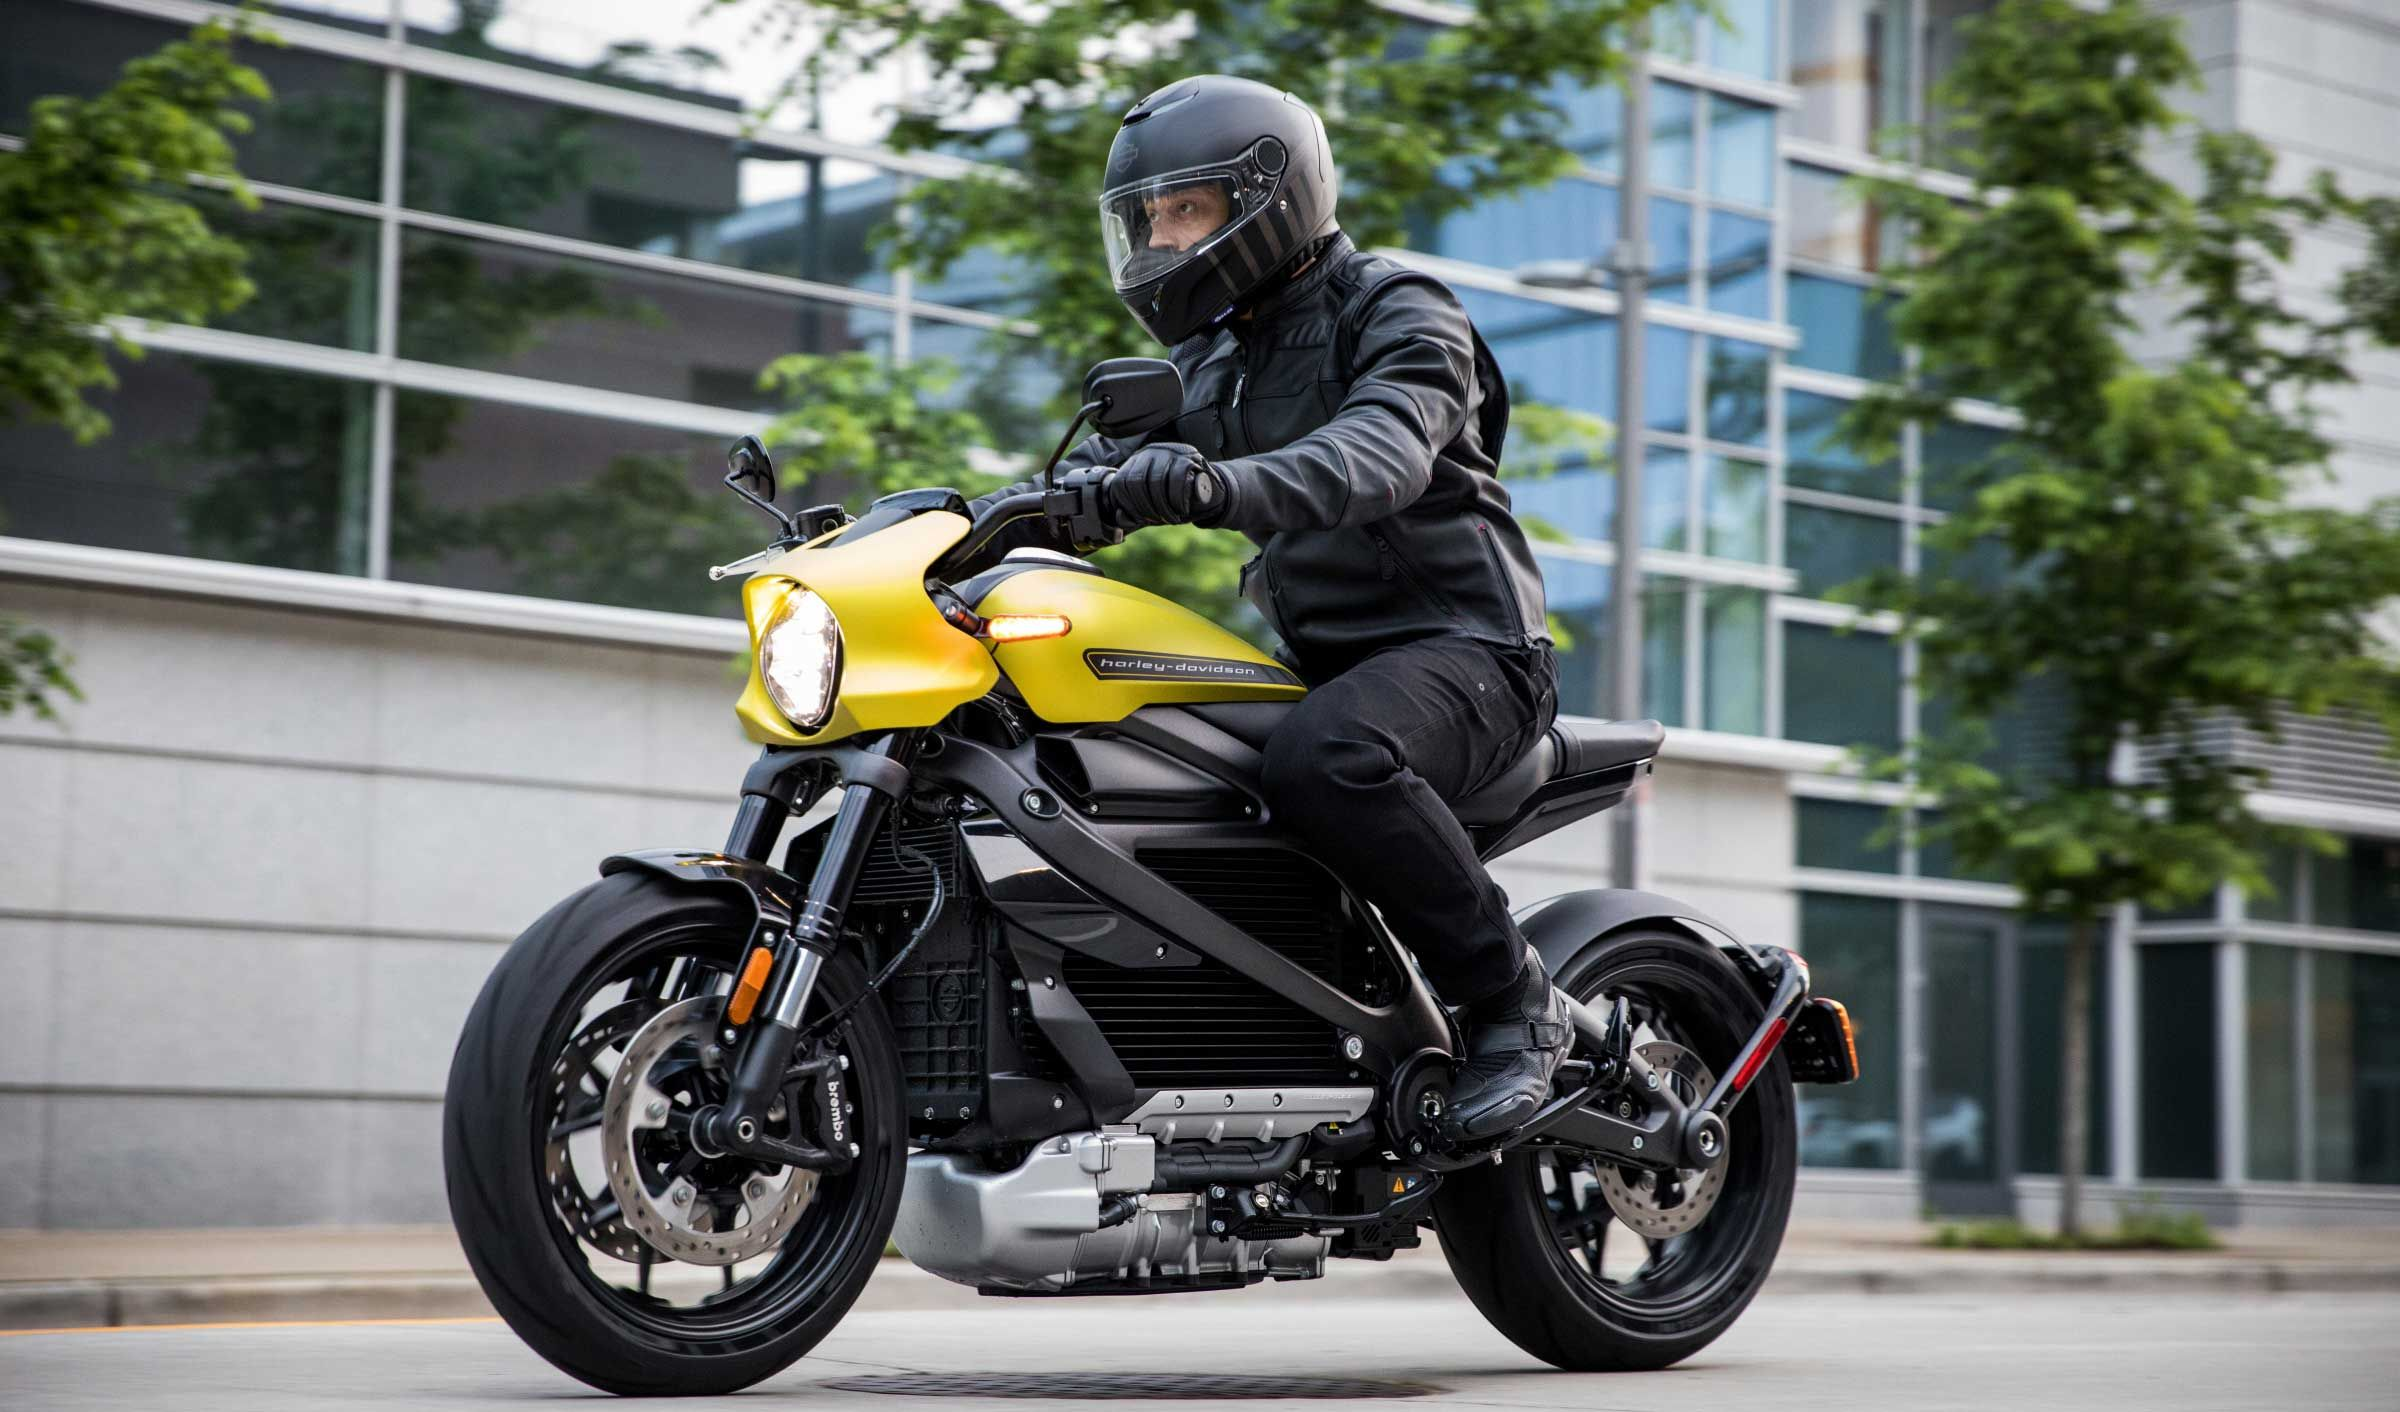 The Future Has Arrived Browse The Harley Davidson Electric Motorcycle Line Up Including The 2020 Livewi Motorcycle Harley Harley Davidson Electric Motorcycle